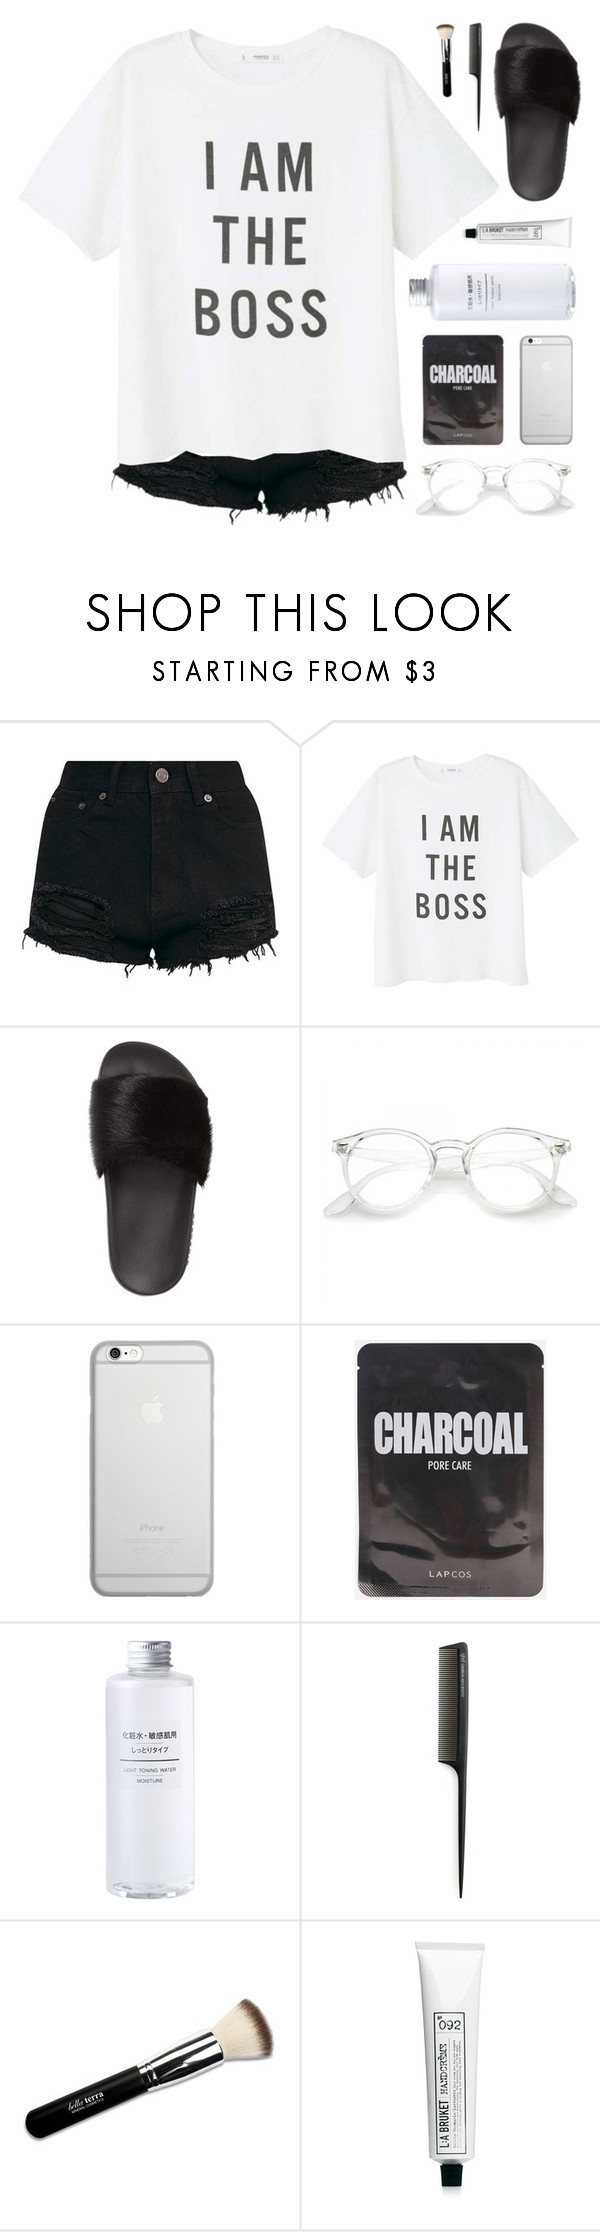 """""""i am the boss"""" by sipoczanna ❤ liked on Polyvore featuring MANGO, Givenchy, Native Union, GHD and L:A Bruket"""